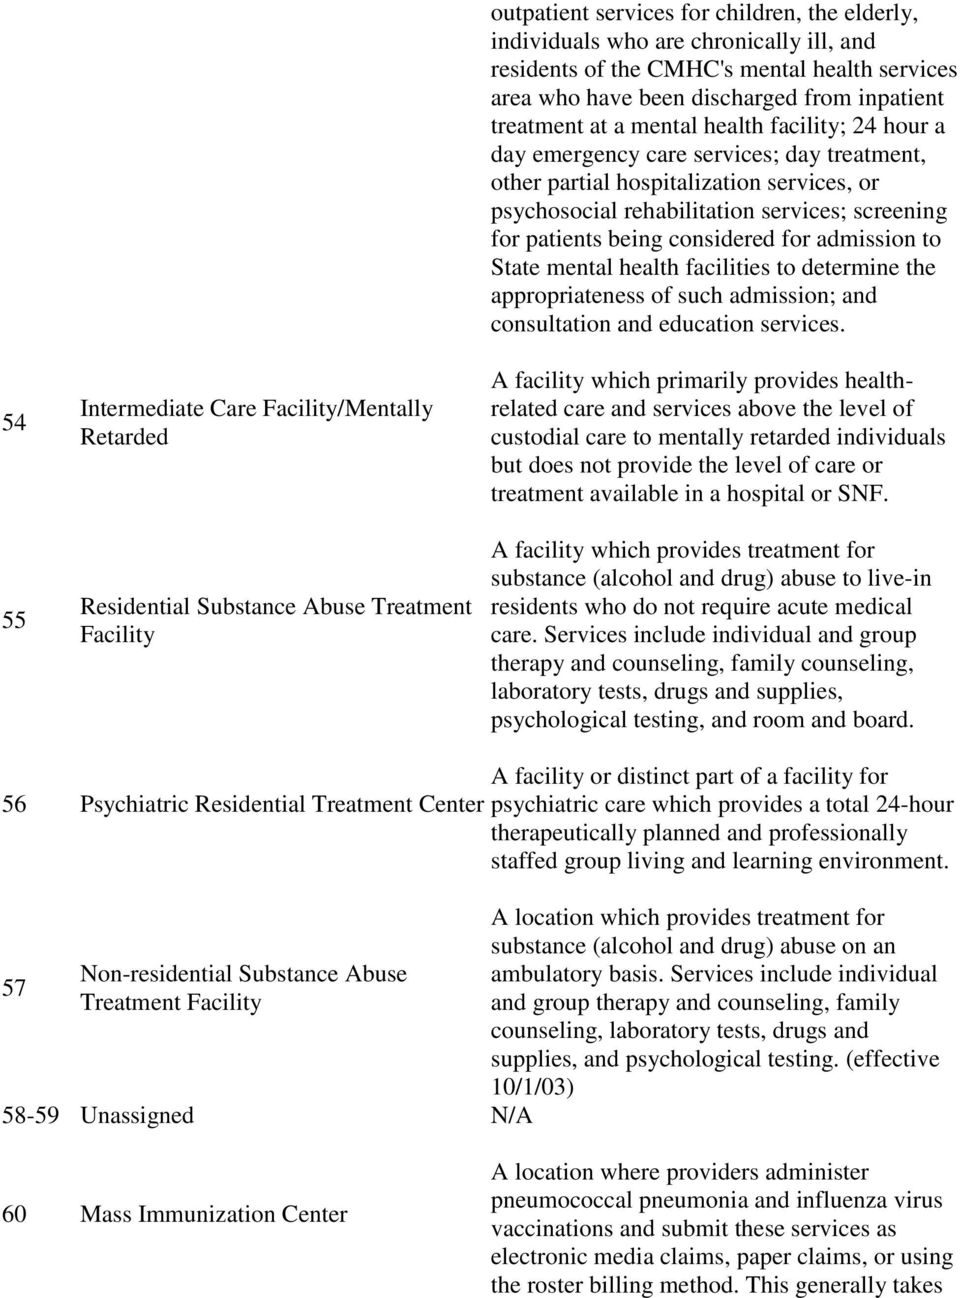 psychosocial rehabilitation services; screening for patients being considered for admission to State mental health facilities to determine the appropriateness of such admission; and consultation and